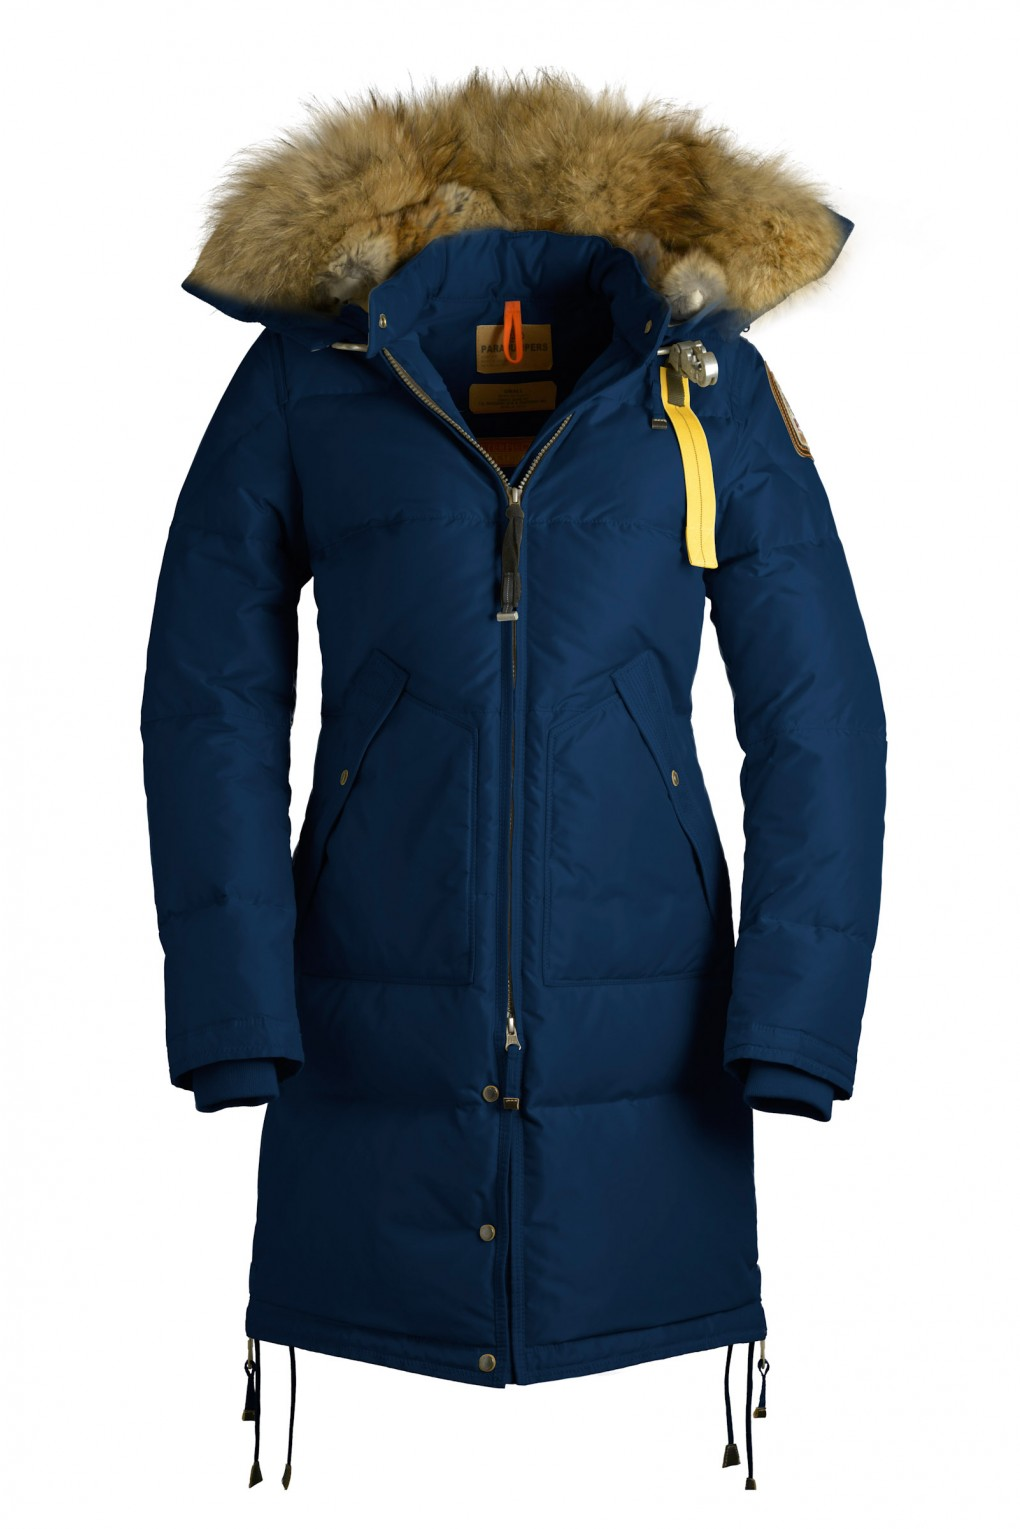 parajumpers LONG BEAR woman outerwear Royal